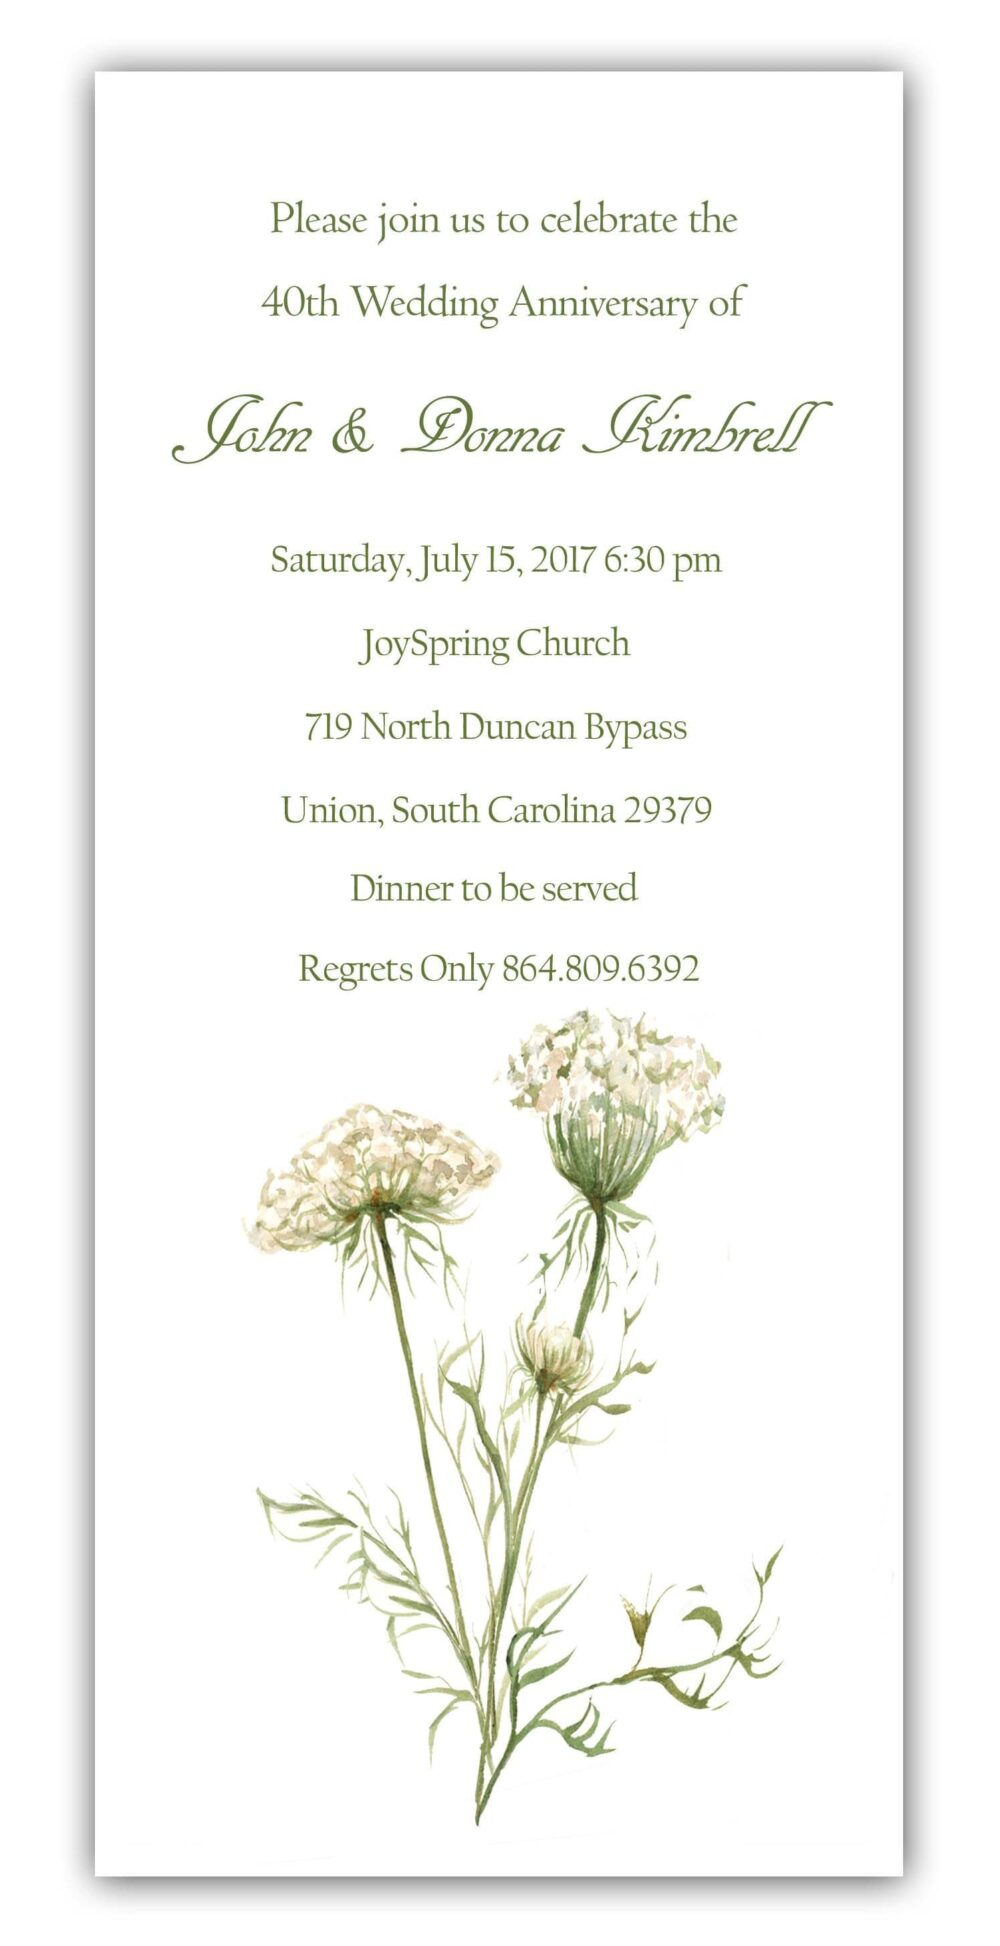 25 Queen Anne's Lace Invitations, Rehearsal Dinner Wedding Save The Date, Wedding, Anniversary